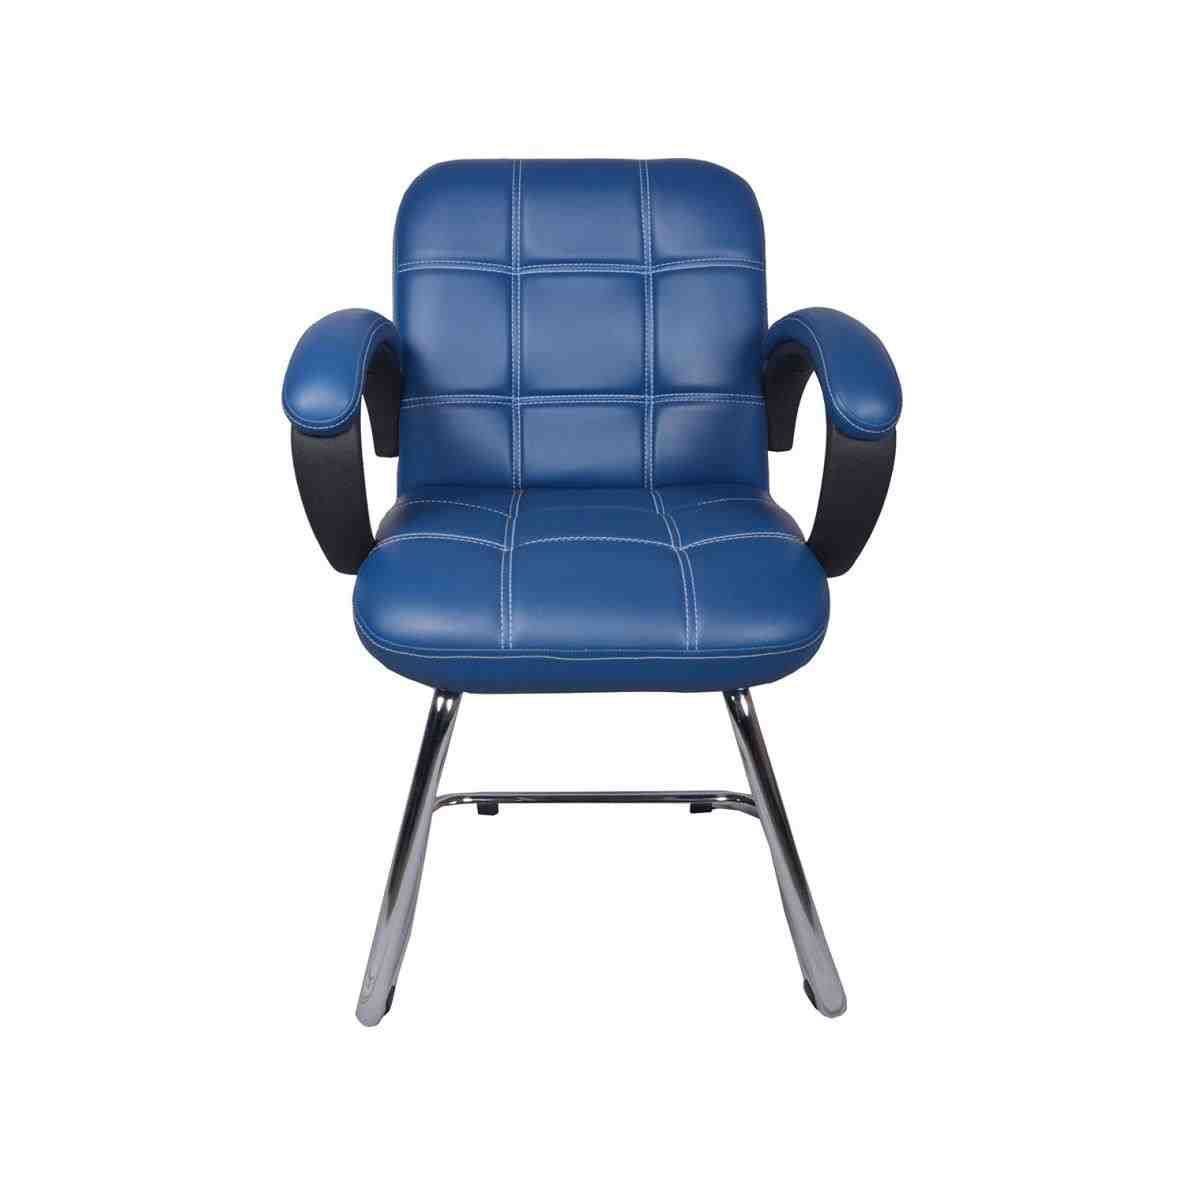 Cheap Office Chairs Online India - executive chairs online india